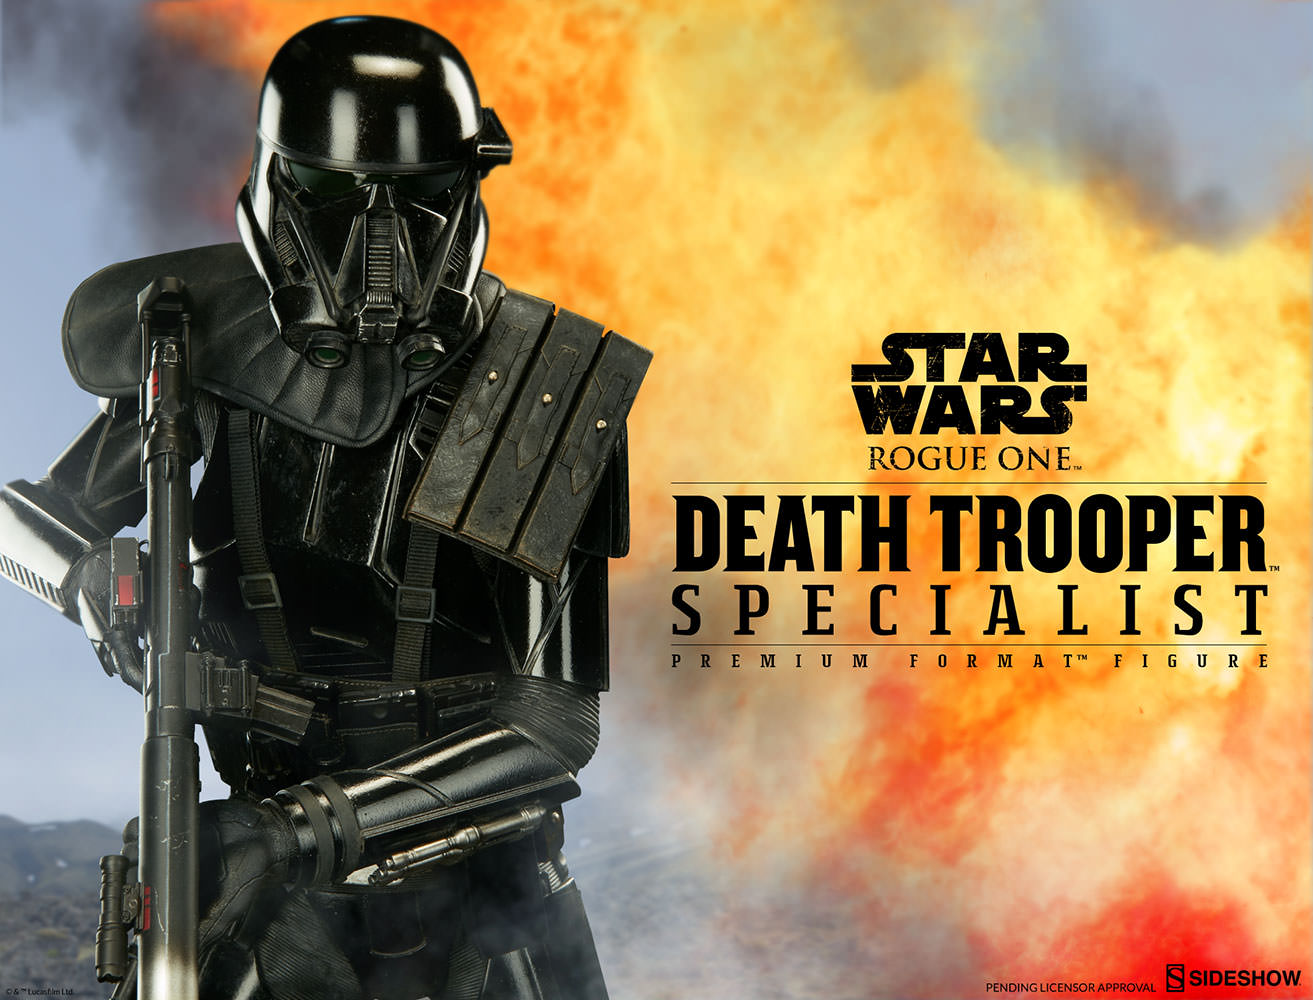 Death Trooper Premium Format Figure